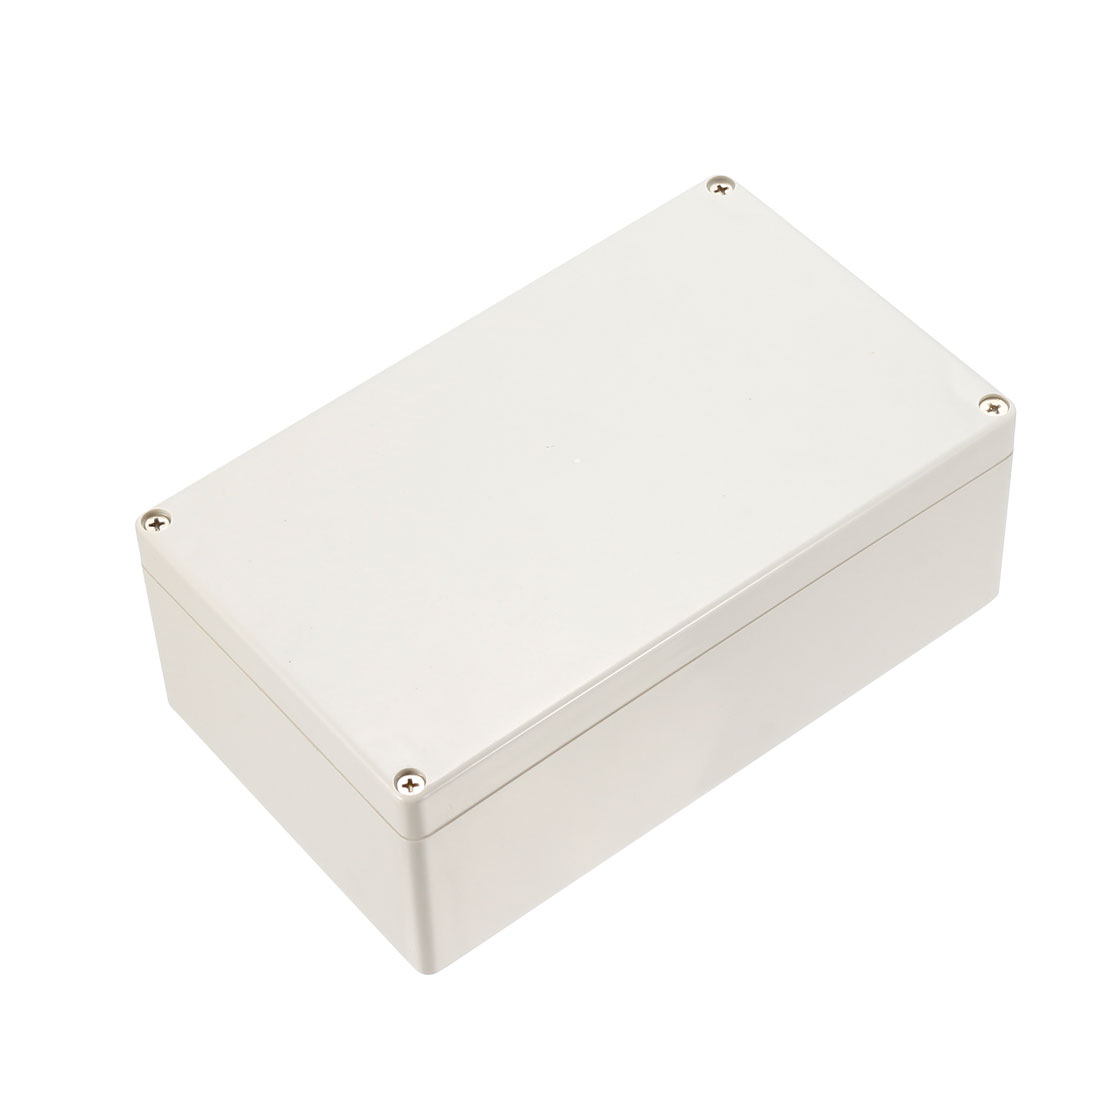 200 x 120 x 75mm Dustproof IP65 Junction Box Terminal Connecting Box Enclosure